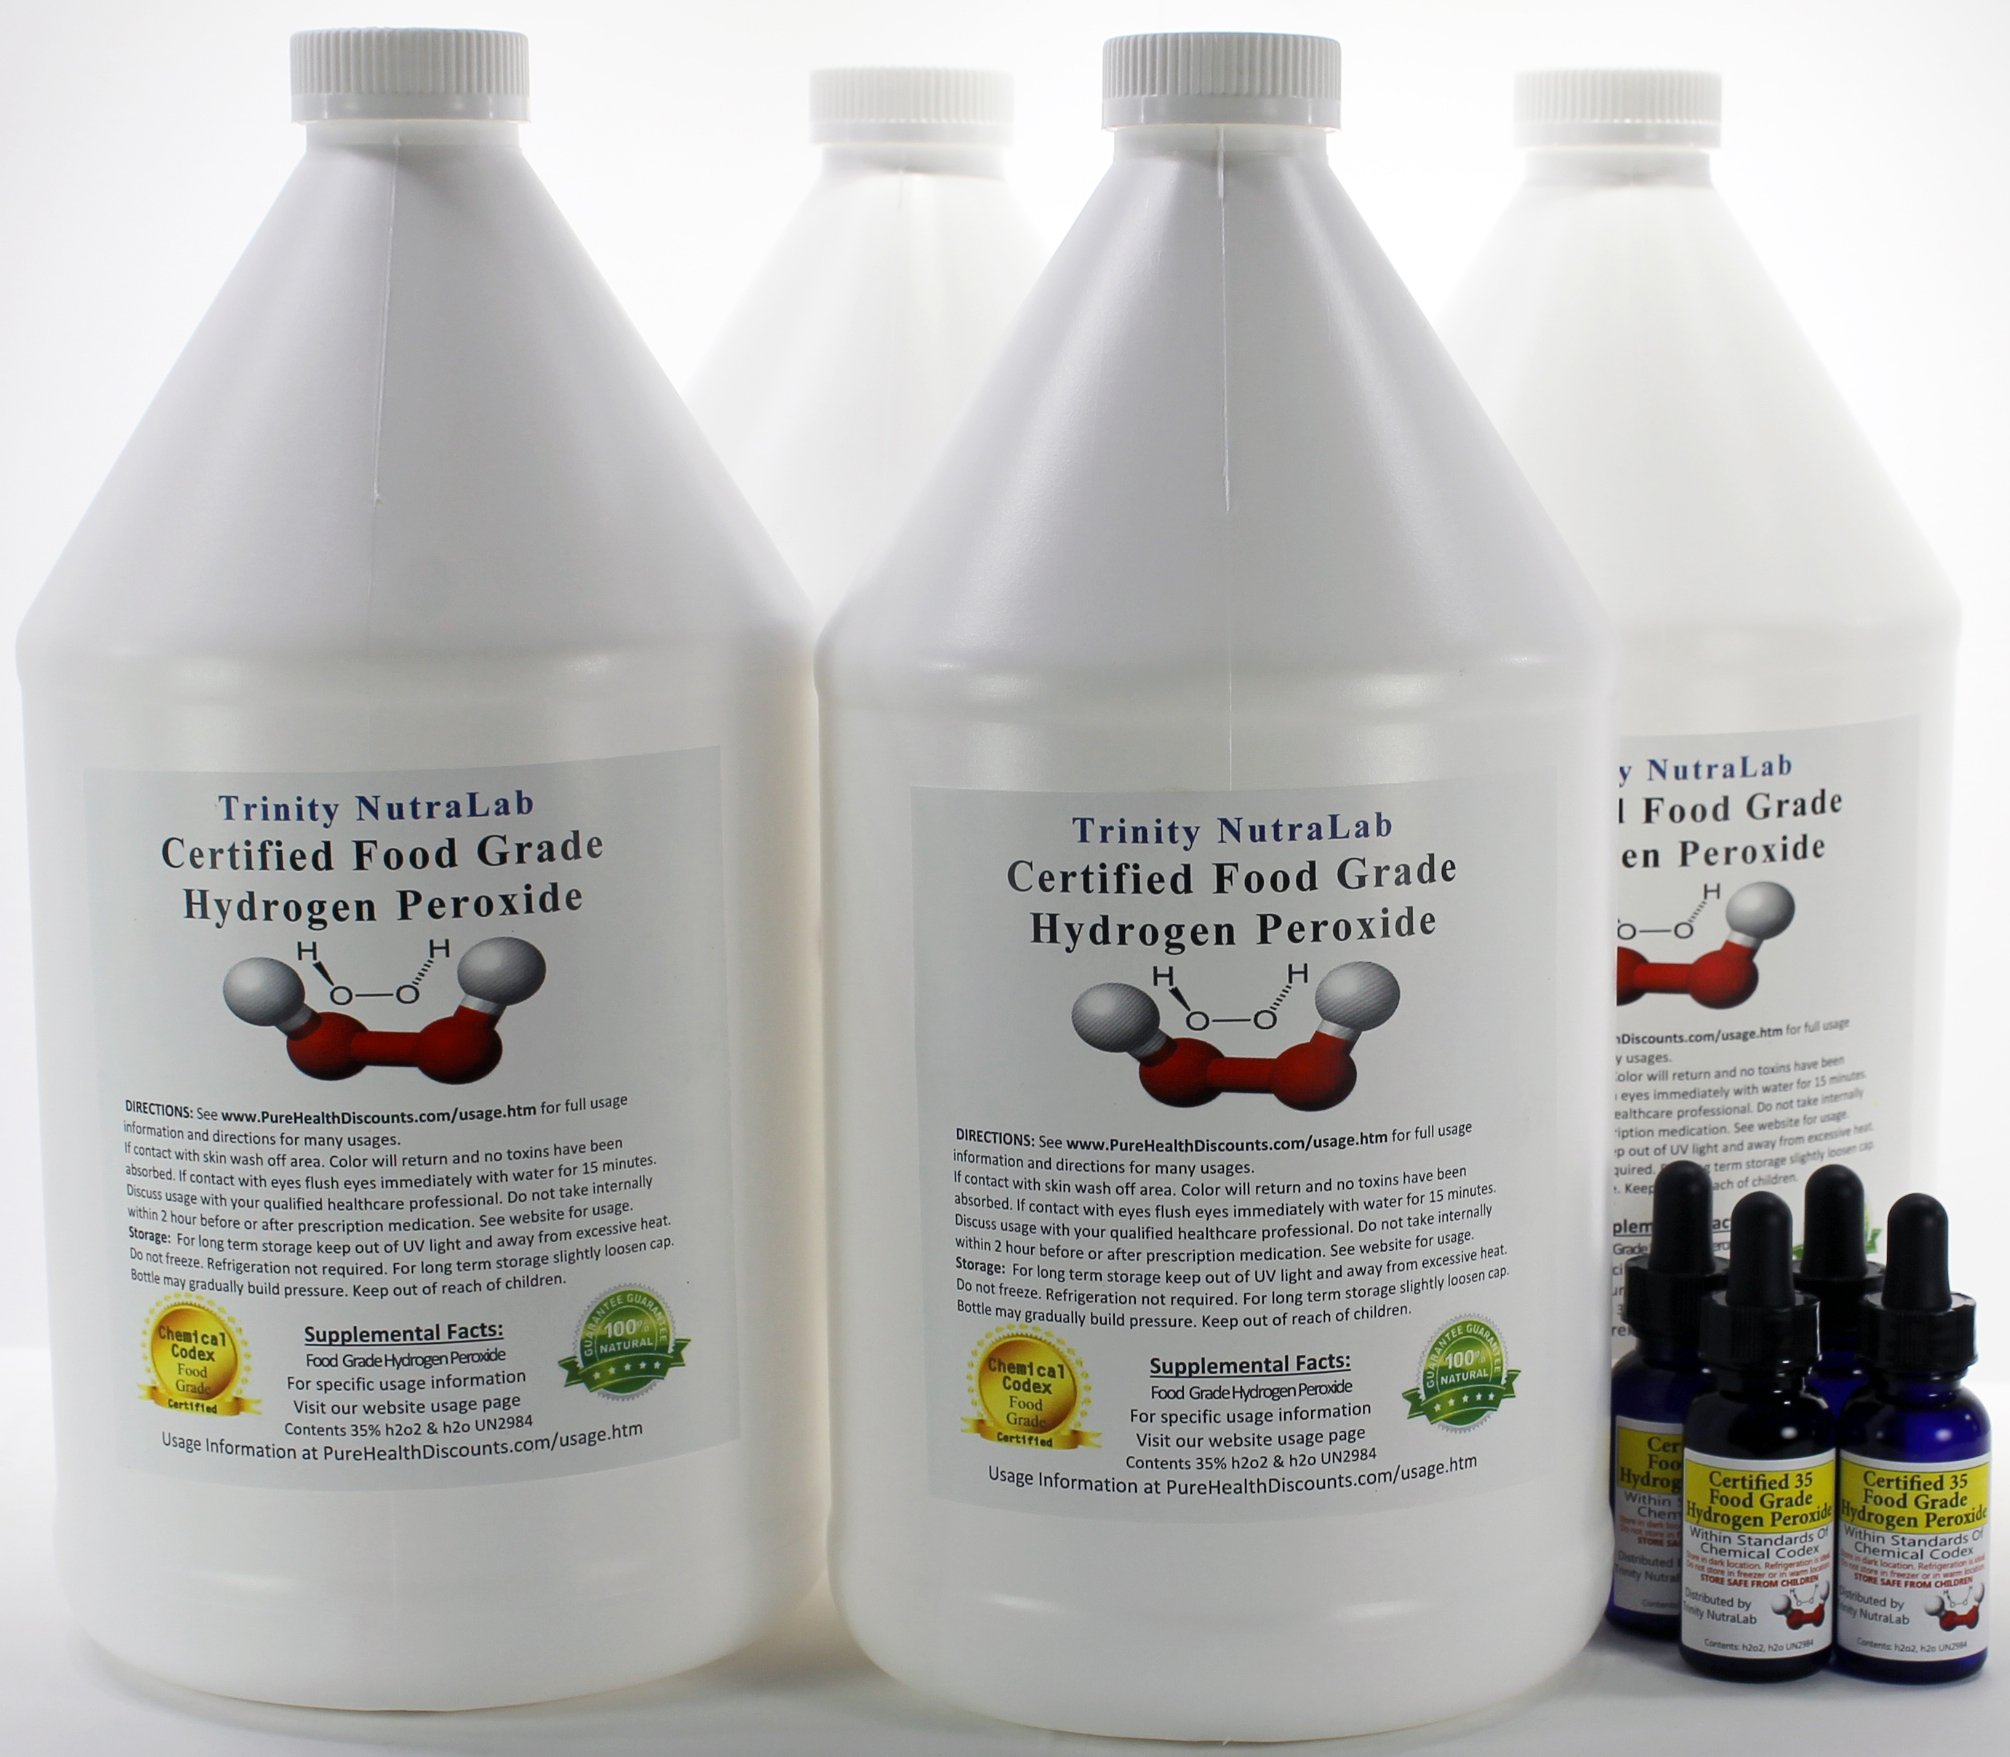 Four Gallons of 35% Food Grade Hydrogen Peroxide with Four Free H2o2 Filled Dropper Bottles. By Trinity NutraLab